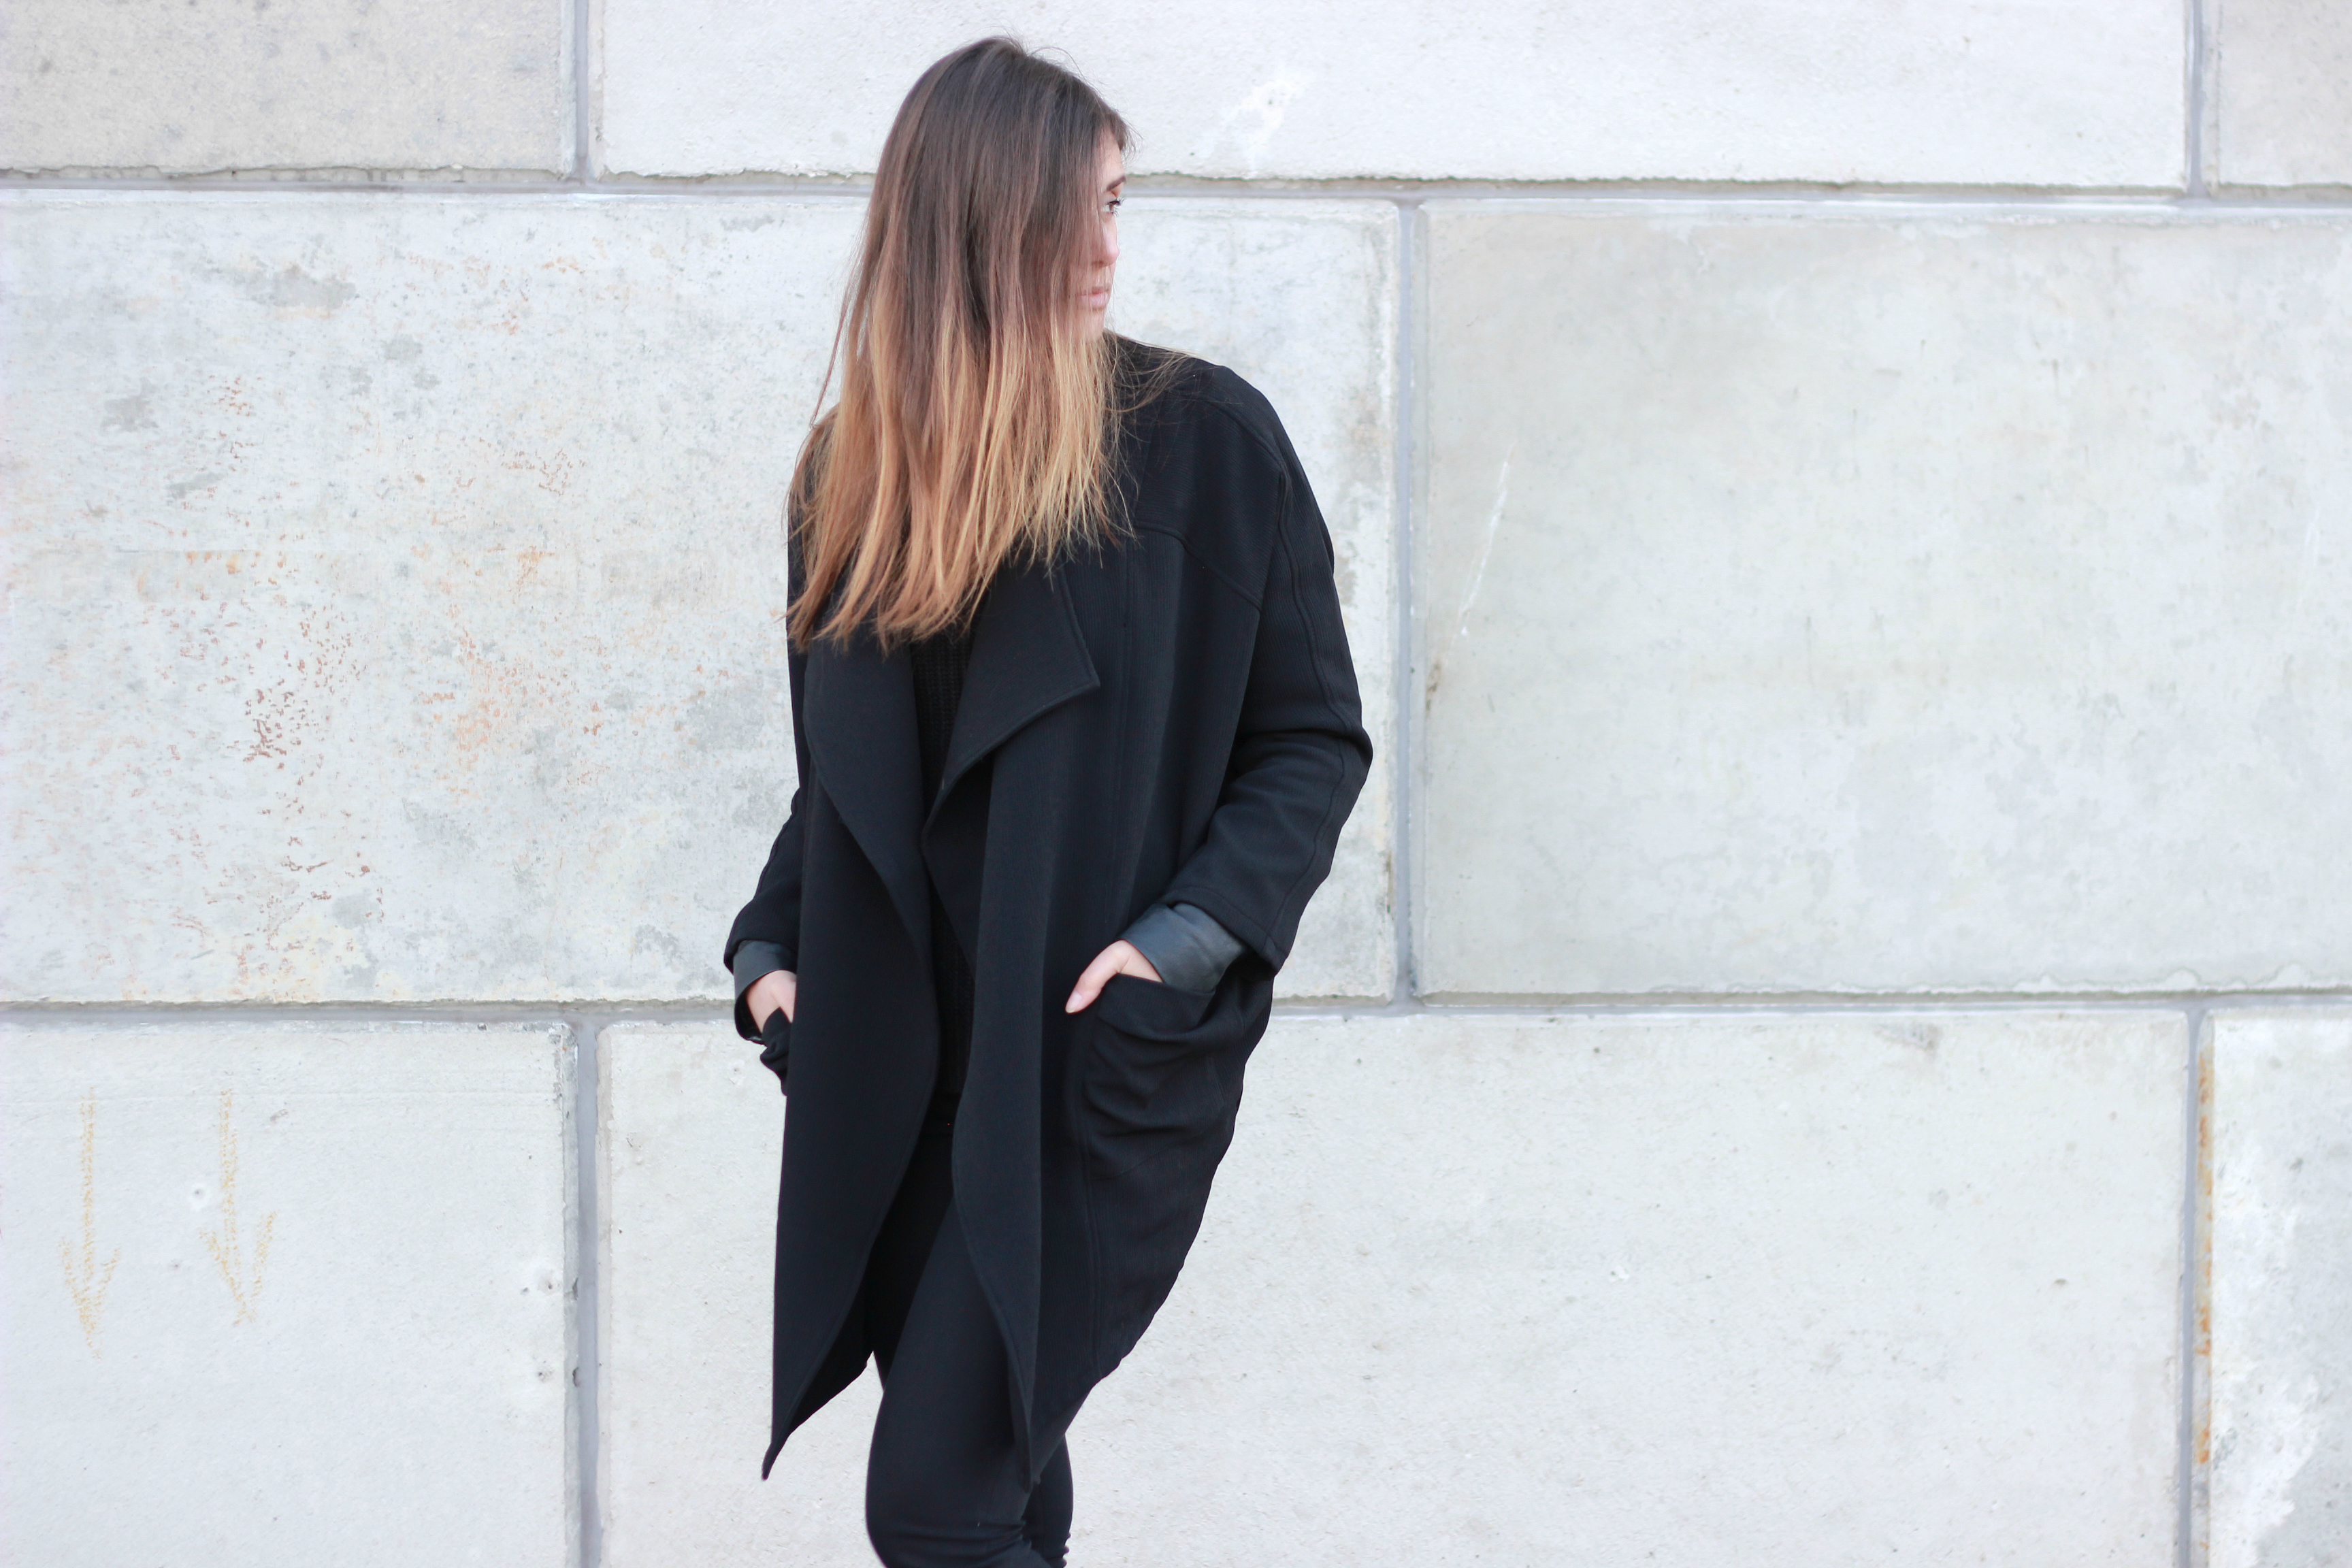 H&M trend, oversized jacket, black on black, minimal, streetwear, monochrome